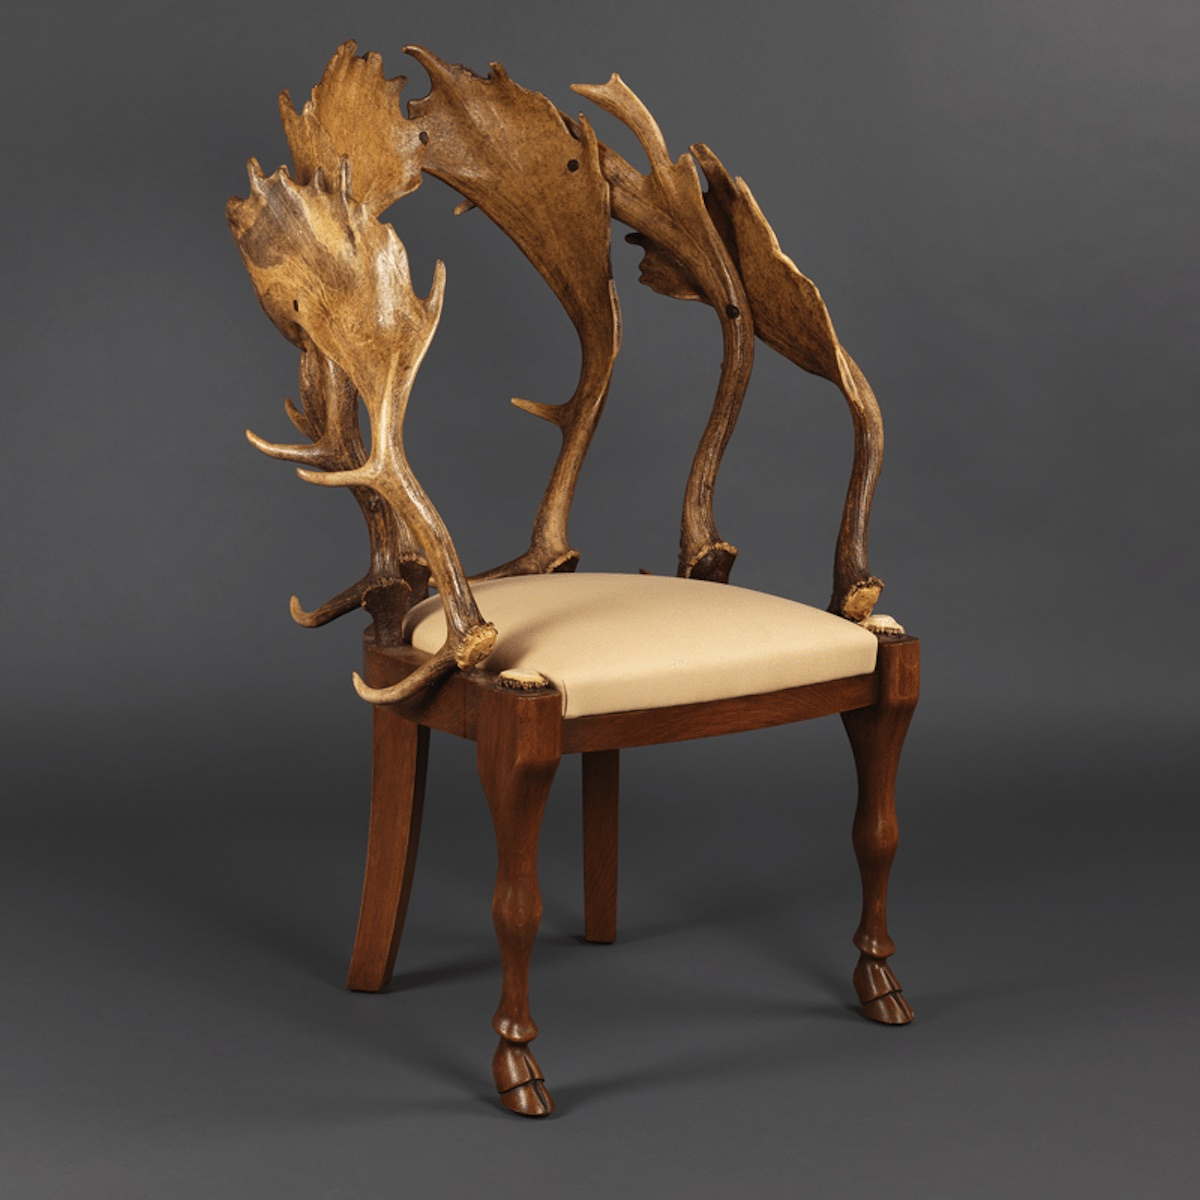 European Fallow Horn and Cowhide Chairs